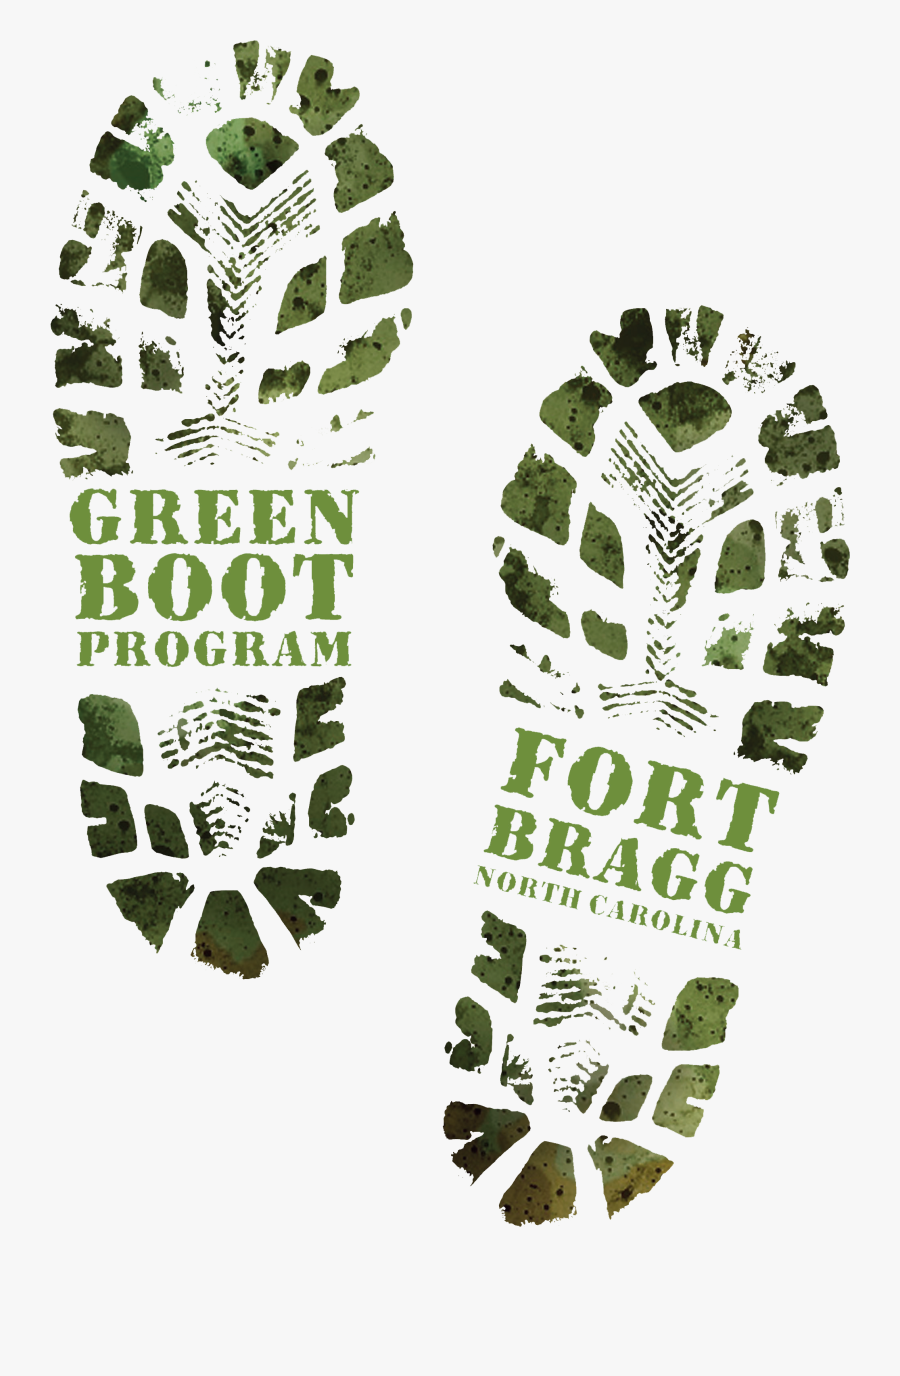 The Green Boot Program Is An Opportunity For Agencies - Safety Walk The Talk, Transparent Clipart